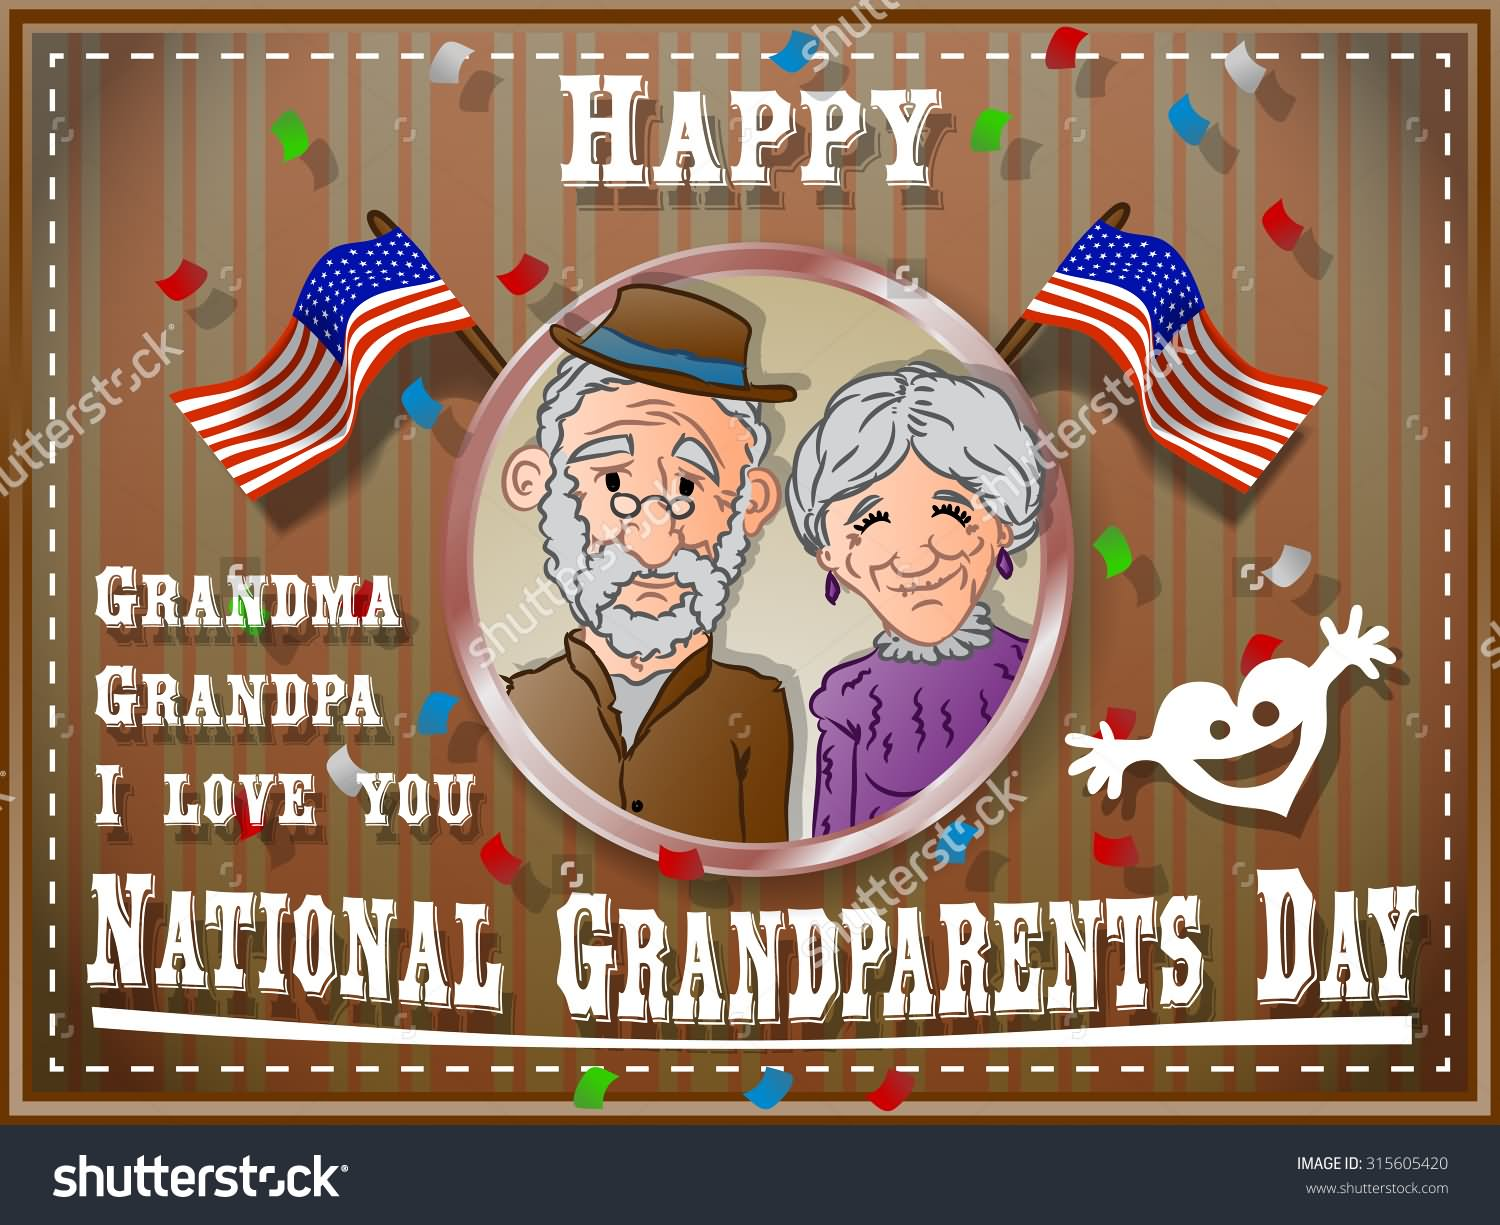 35 most beautiful grandparents day greeting card images happy national grandparents day grandma grandpa i love you greeting card kristyandbryce Gallery